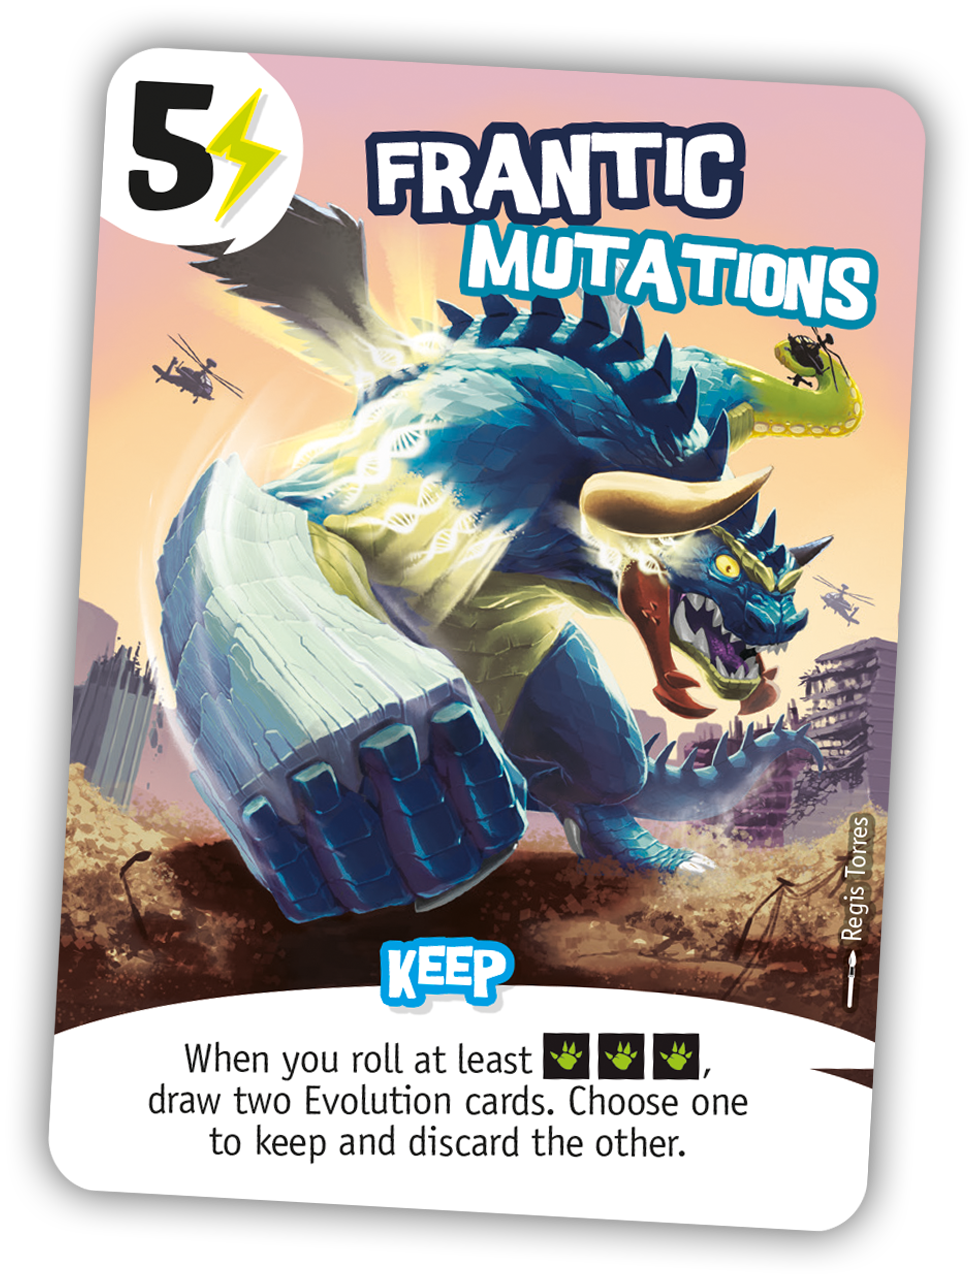 King of Tokyo: Promo Card Frantic Mutations